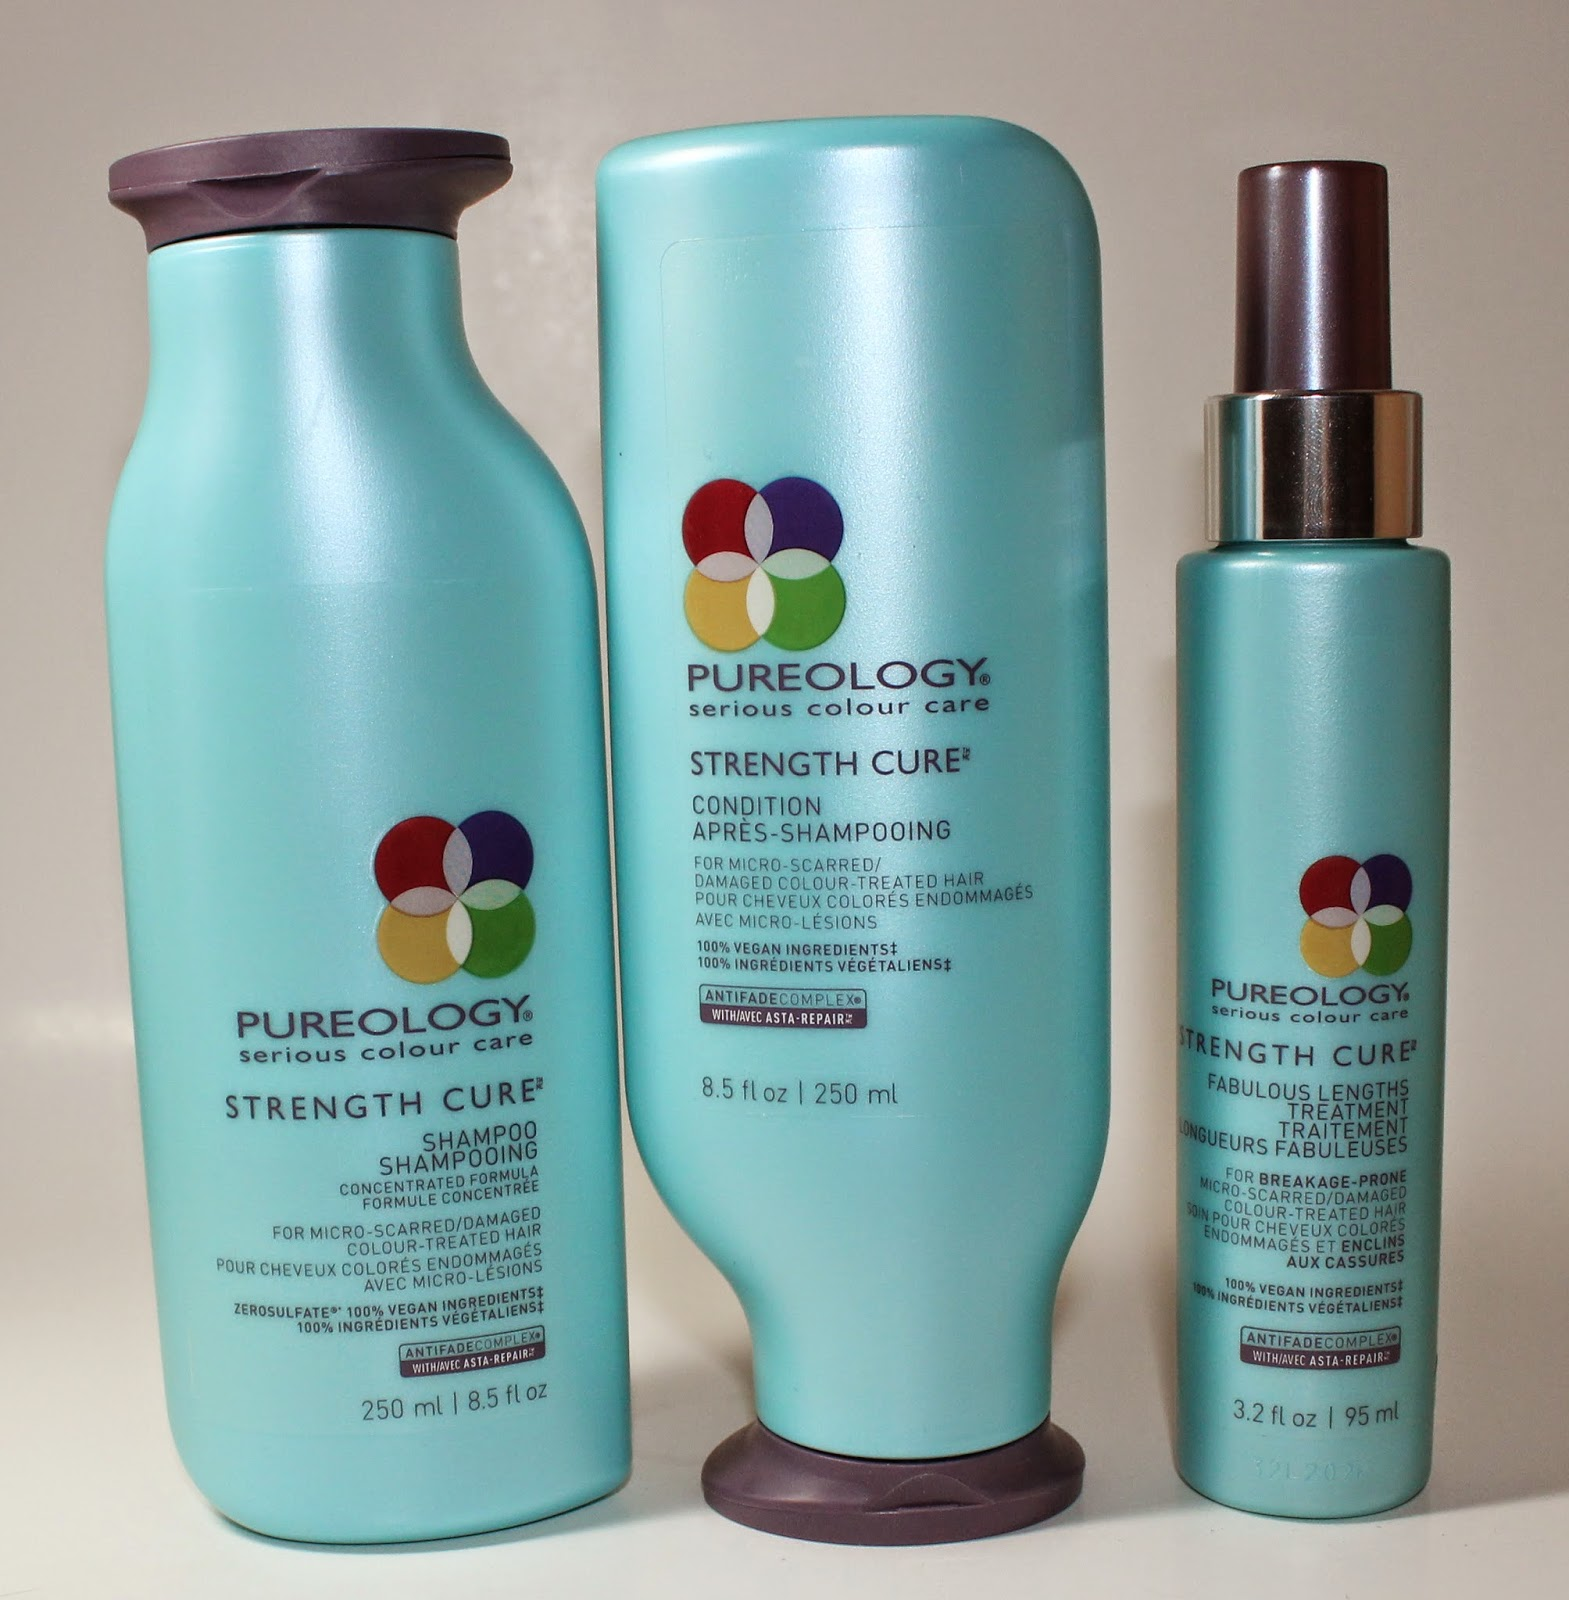 Pureology Strength Cure Shampoo, Condition & Fabulous Lengths Treatment